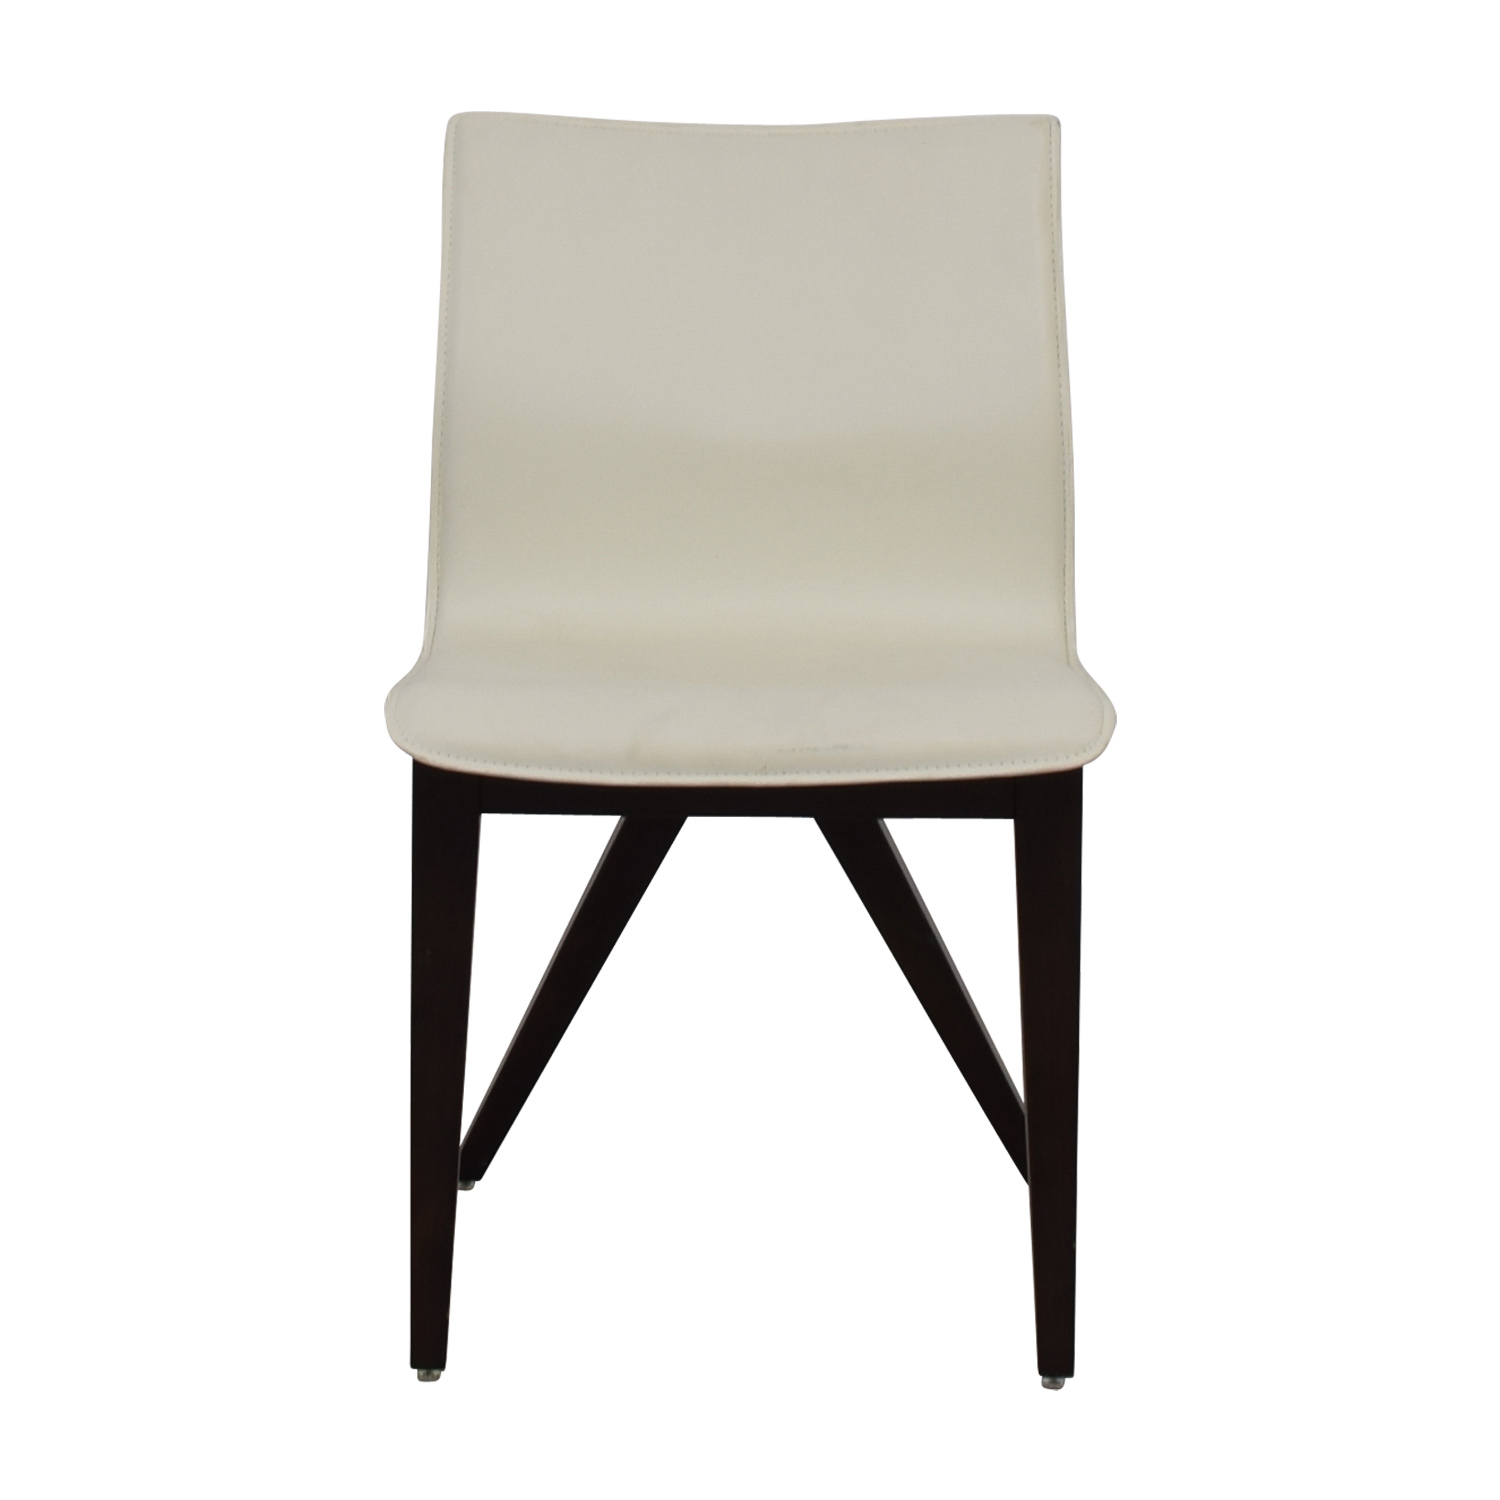 Cliff Young Cliff Young X-Back White Leather Chair for sale